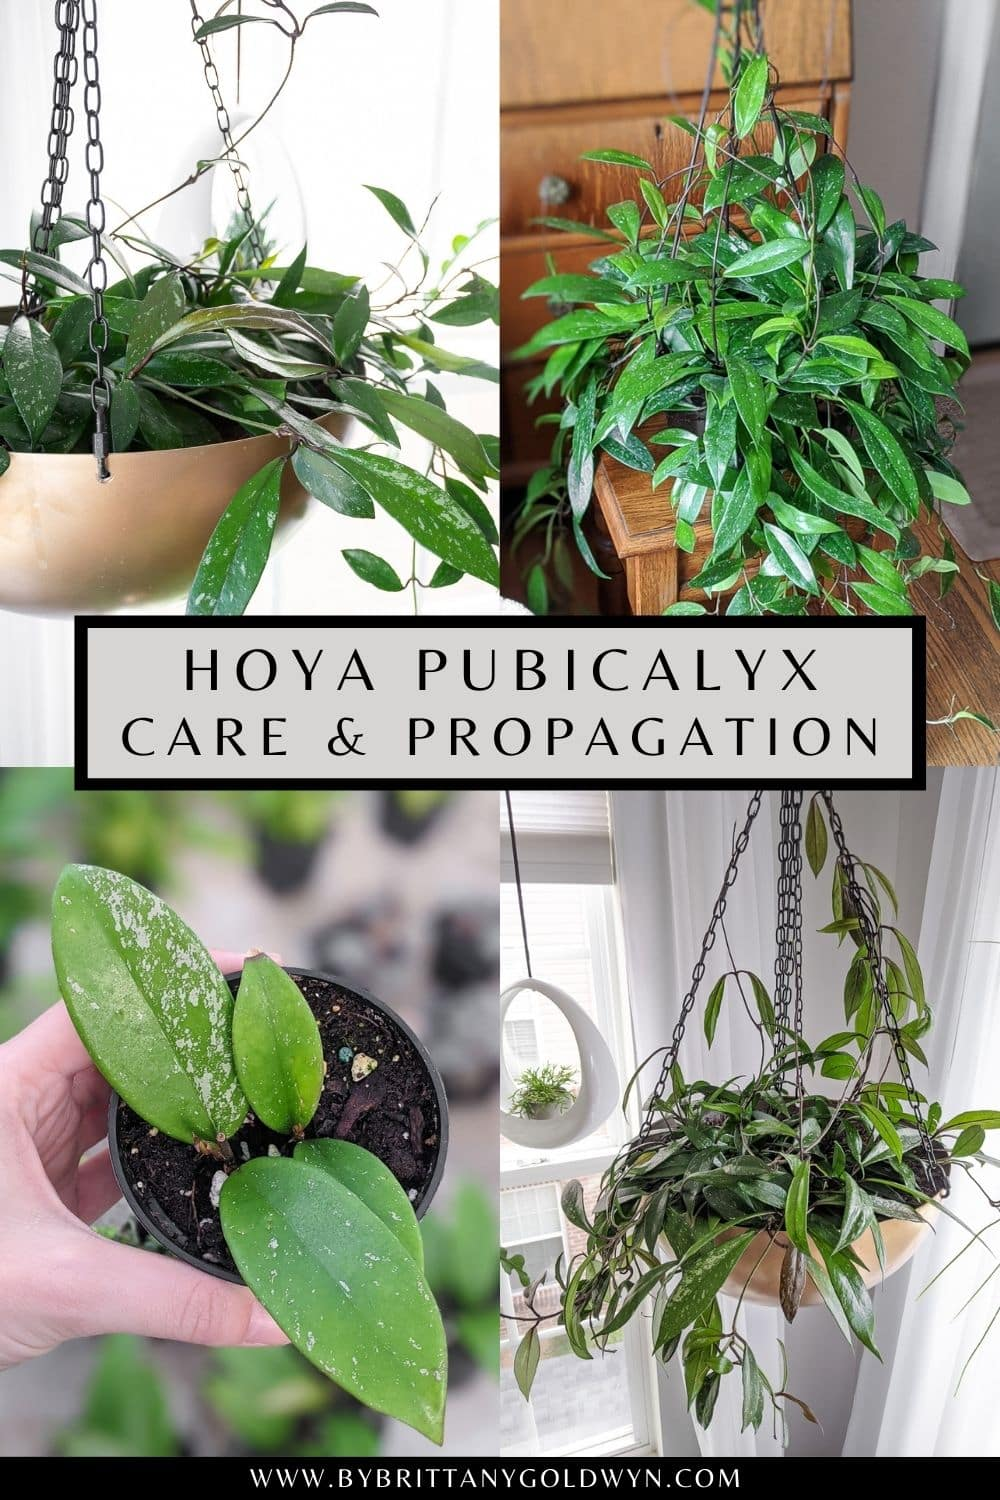 pinnable graphic of hoya pubicalyx photos and text overlay about how to care for and propagate the plant